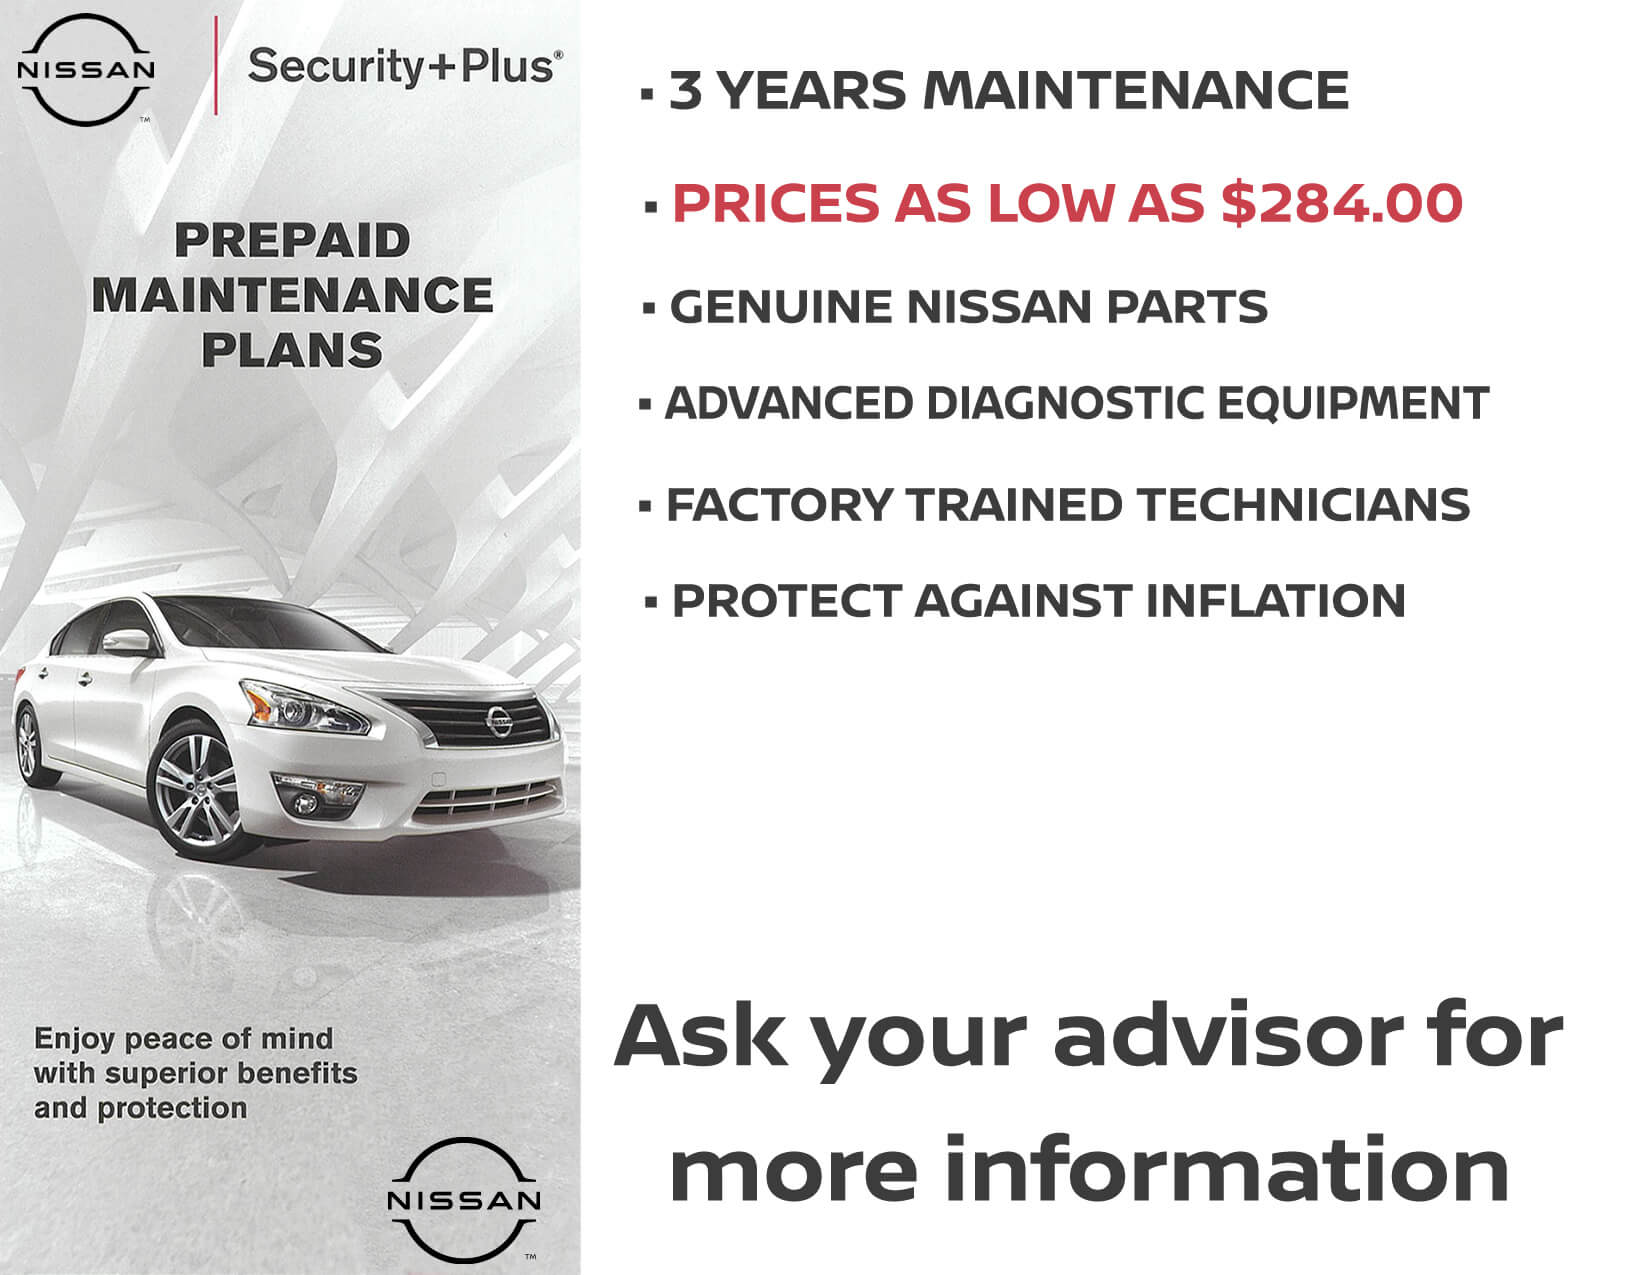 Pre-Paid Maintenance Plans at Woodbury Nissan - Ask your advisor for more information